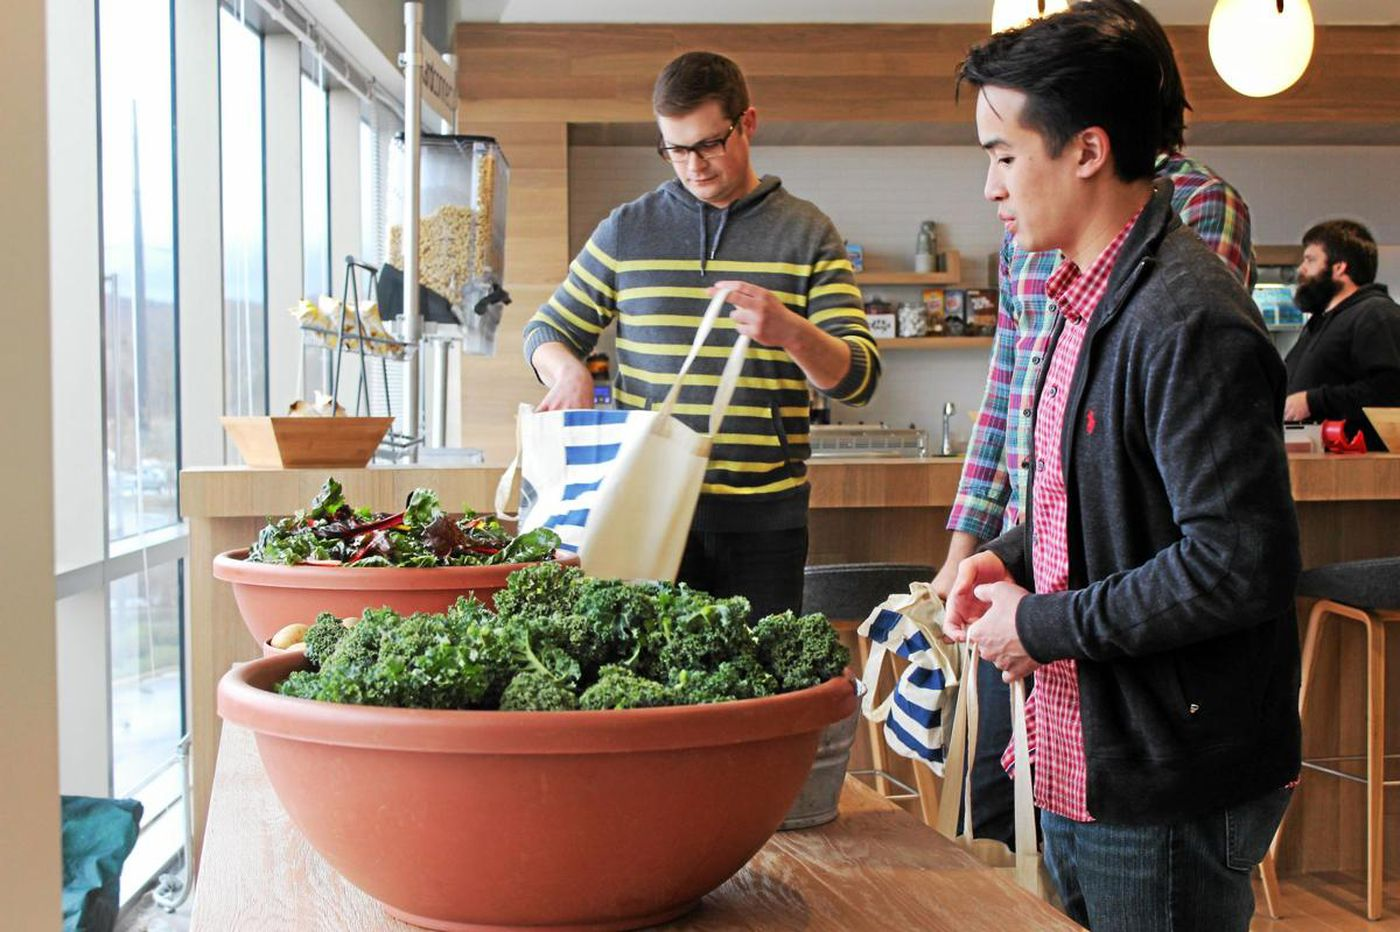 From fresh veggies to pet insurance, companies are reaching out beyond the usual perks